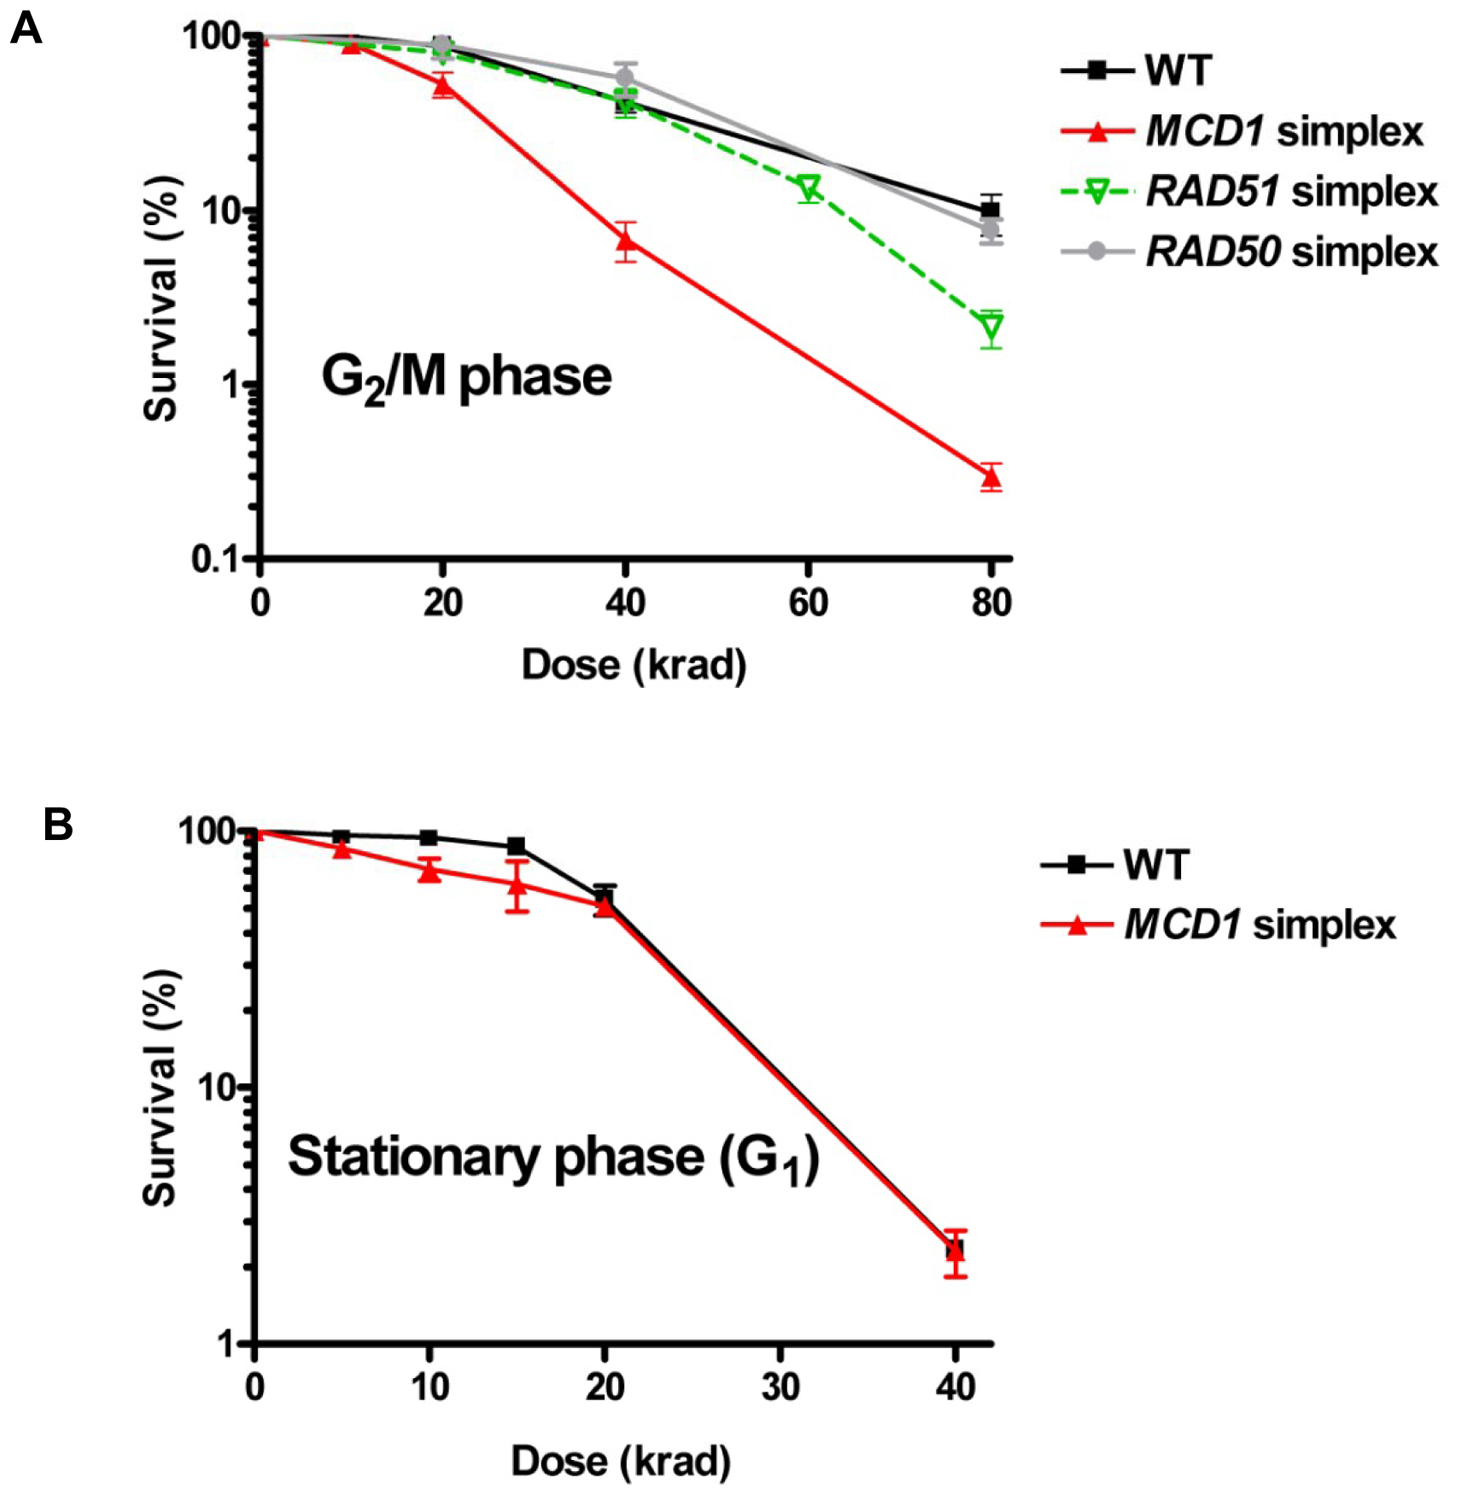 <i>MCD1</i> simplex cells are more sensitive than the WT to IR as G<sub>2</sub>/M but not G<sub>1</sub> (stationary) phase cells.